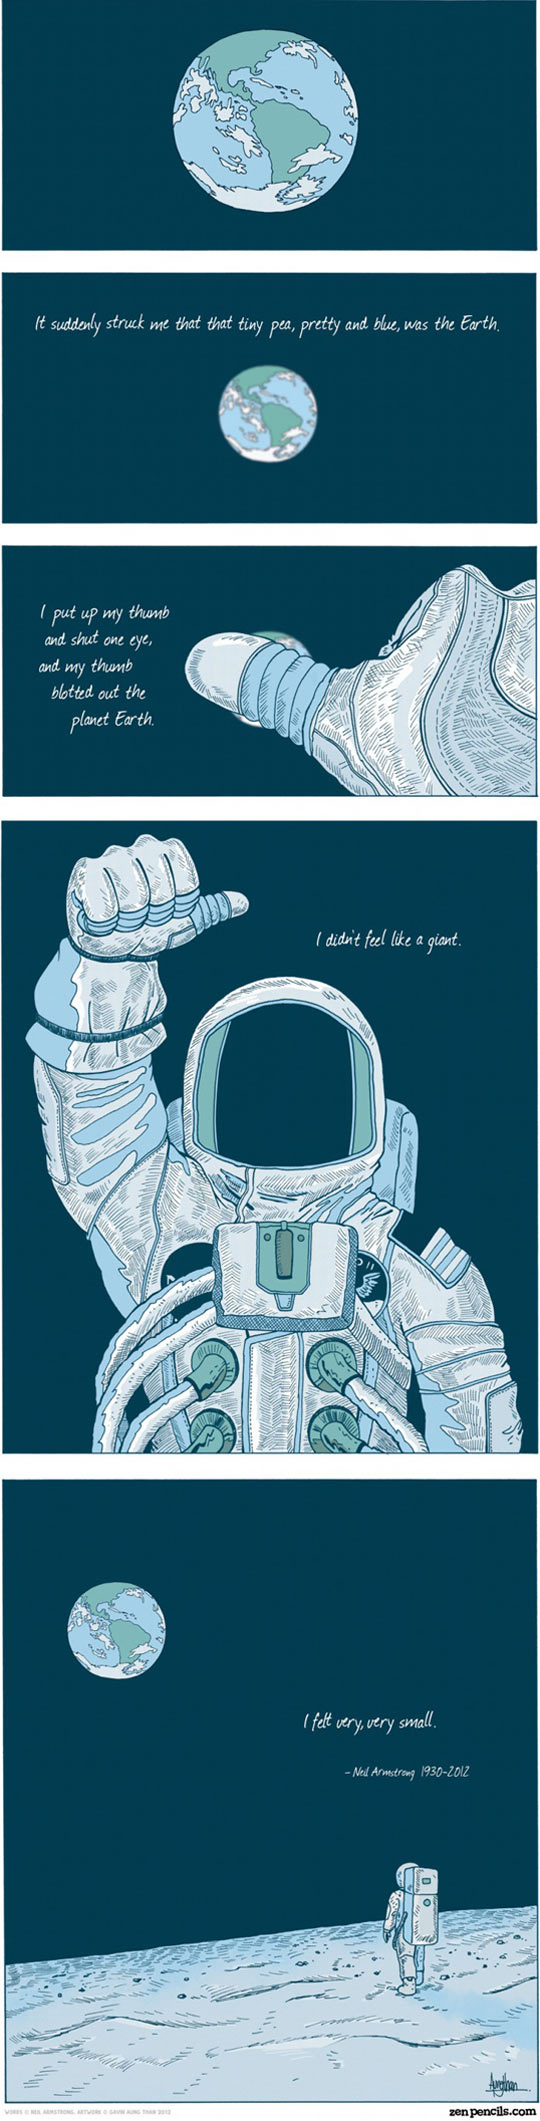 funny-Neil-Armstrong-Earth-Moon-comic